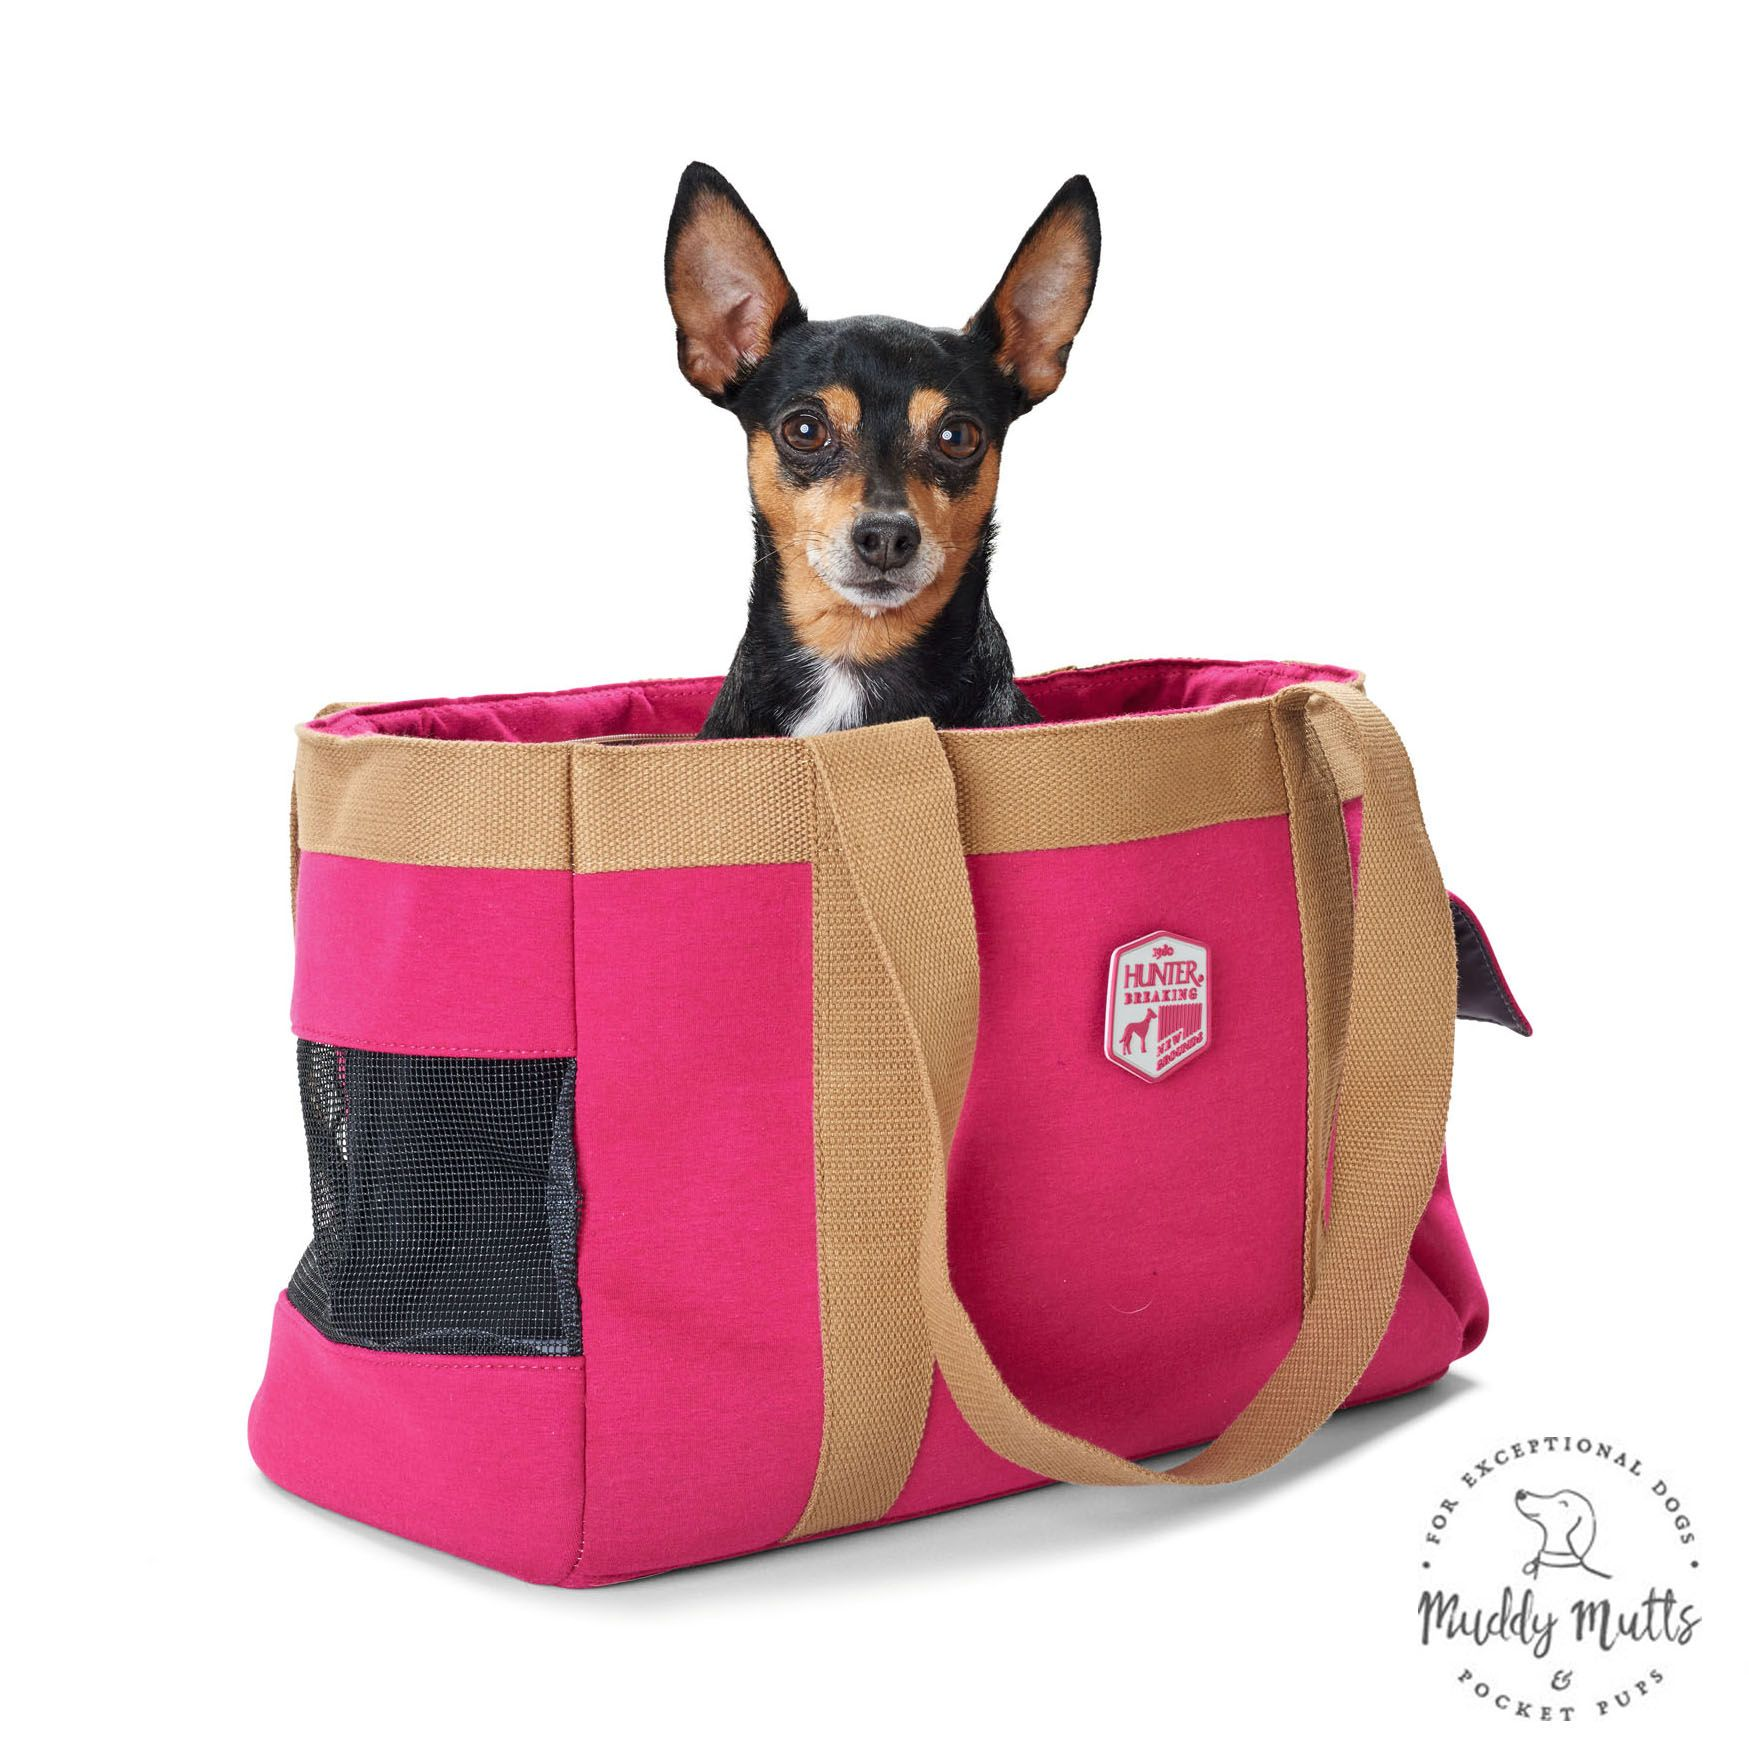 Perth Dog Carry Bags Dog Carrier Bag Bags Luxury Dog Carrier